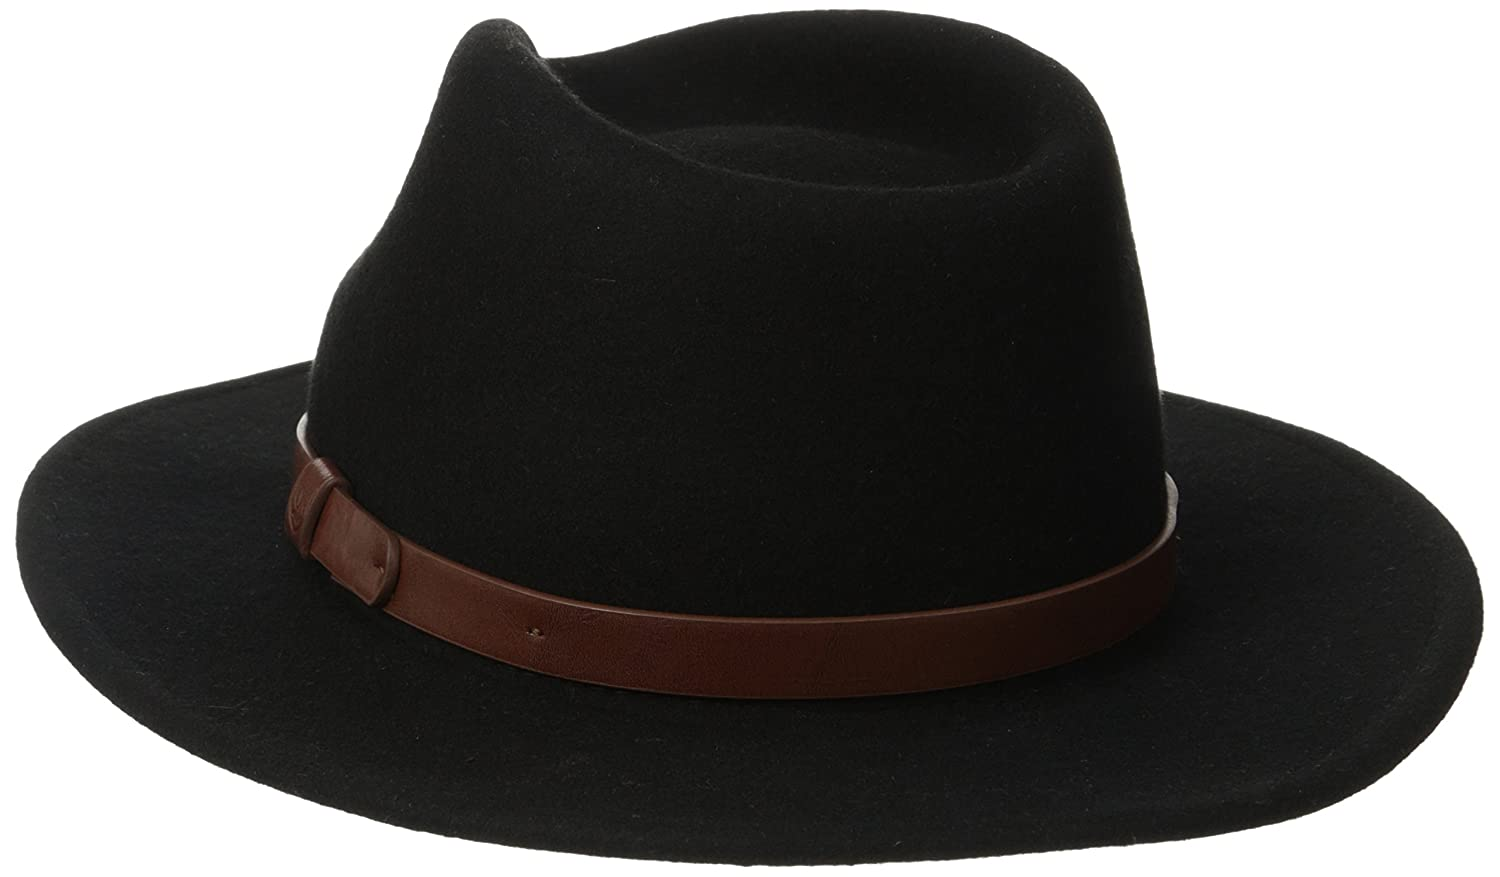 d65edf75 Amazon.com: Brixton Men's Messer Medium Brim Felt Fedora Hat: Clothing